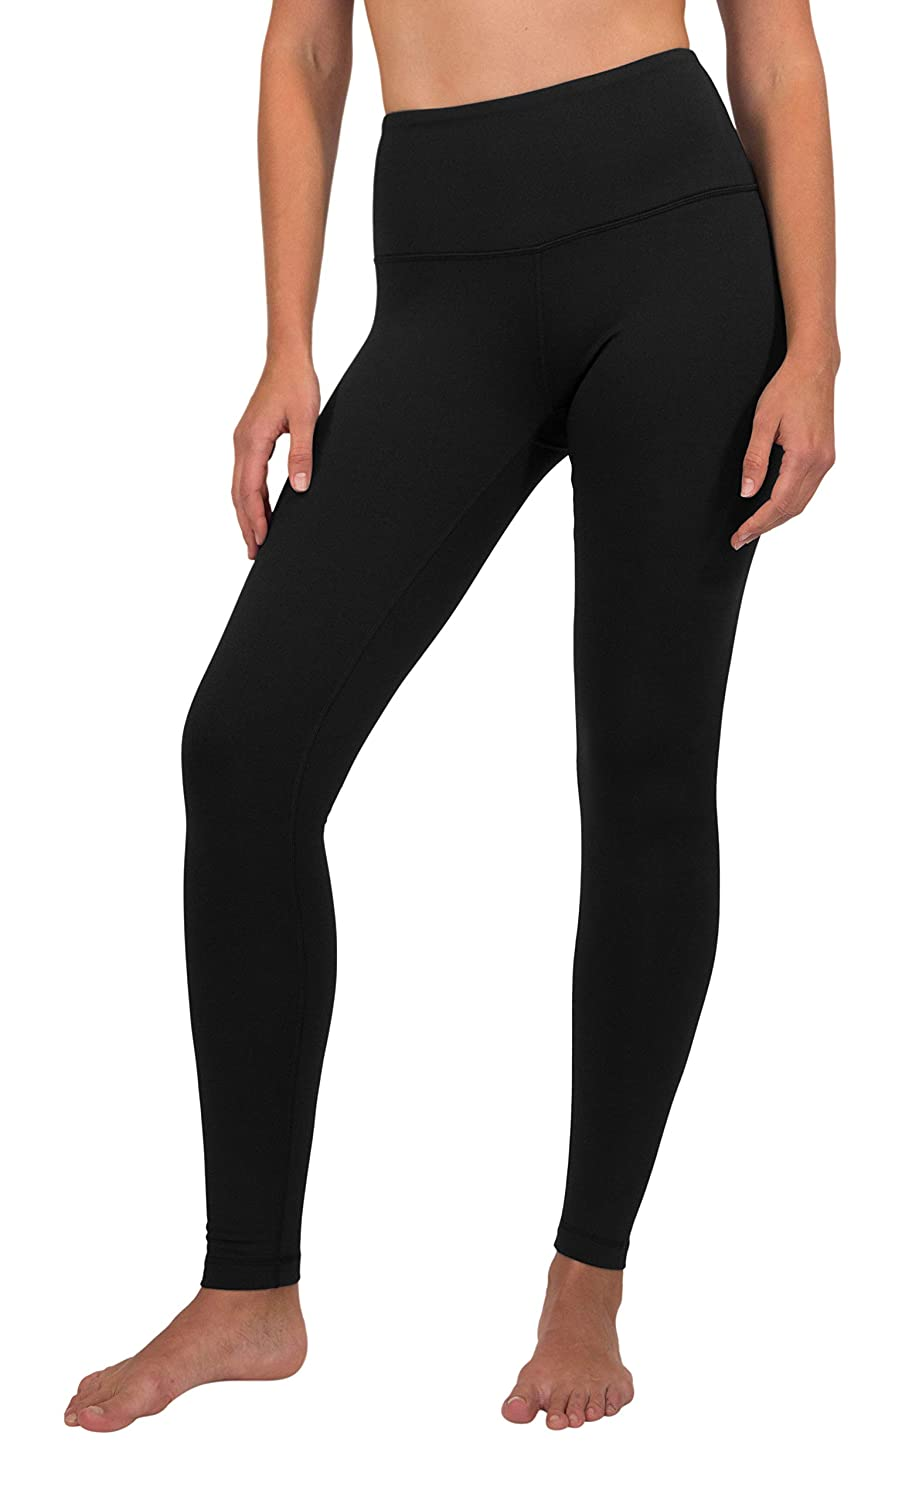 69c23bb86856e Amazon.com: 90 Degree By Reflex High Waist Fleece Lined Leggings - Yoga  Pants - Black - Large: Clothing